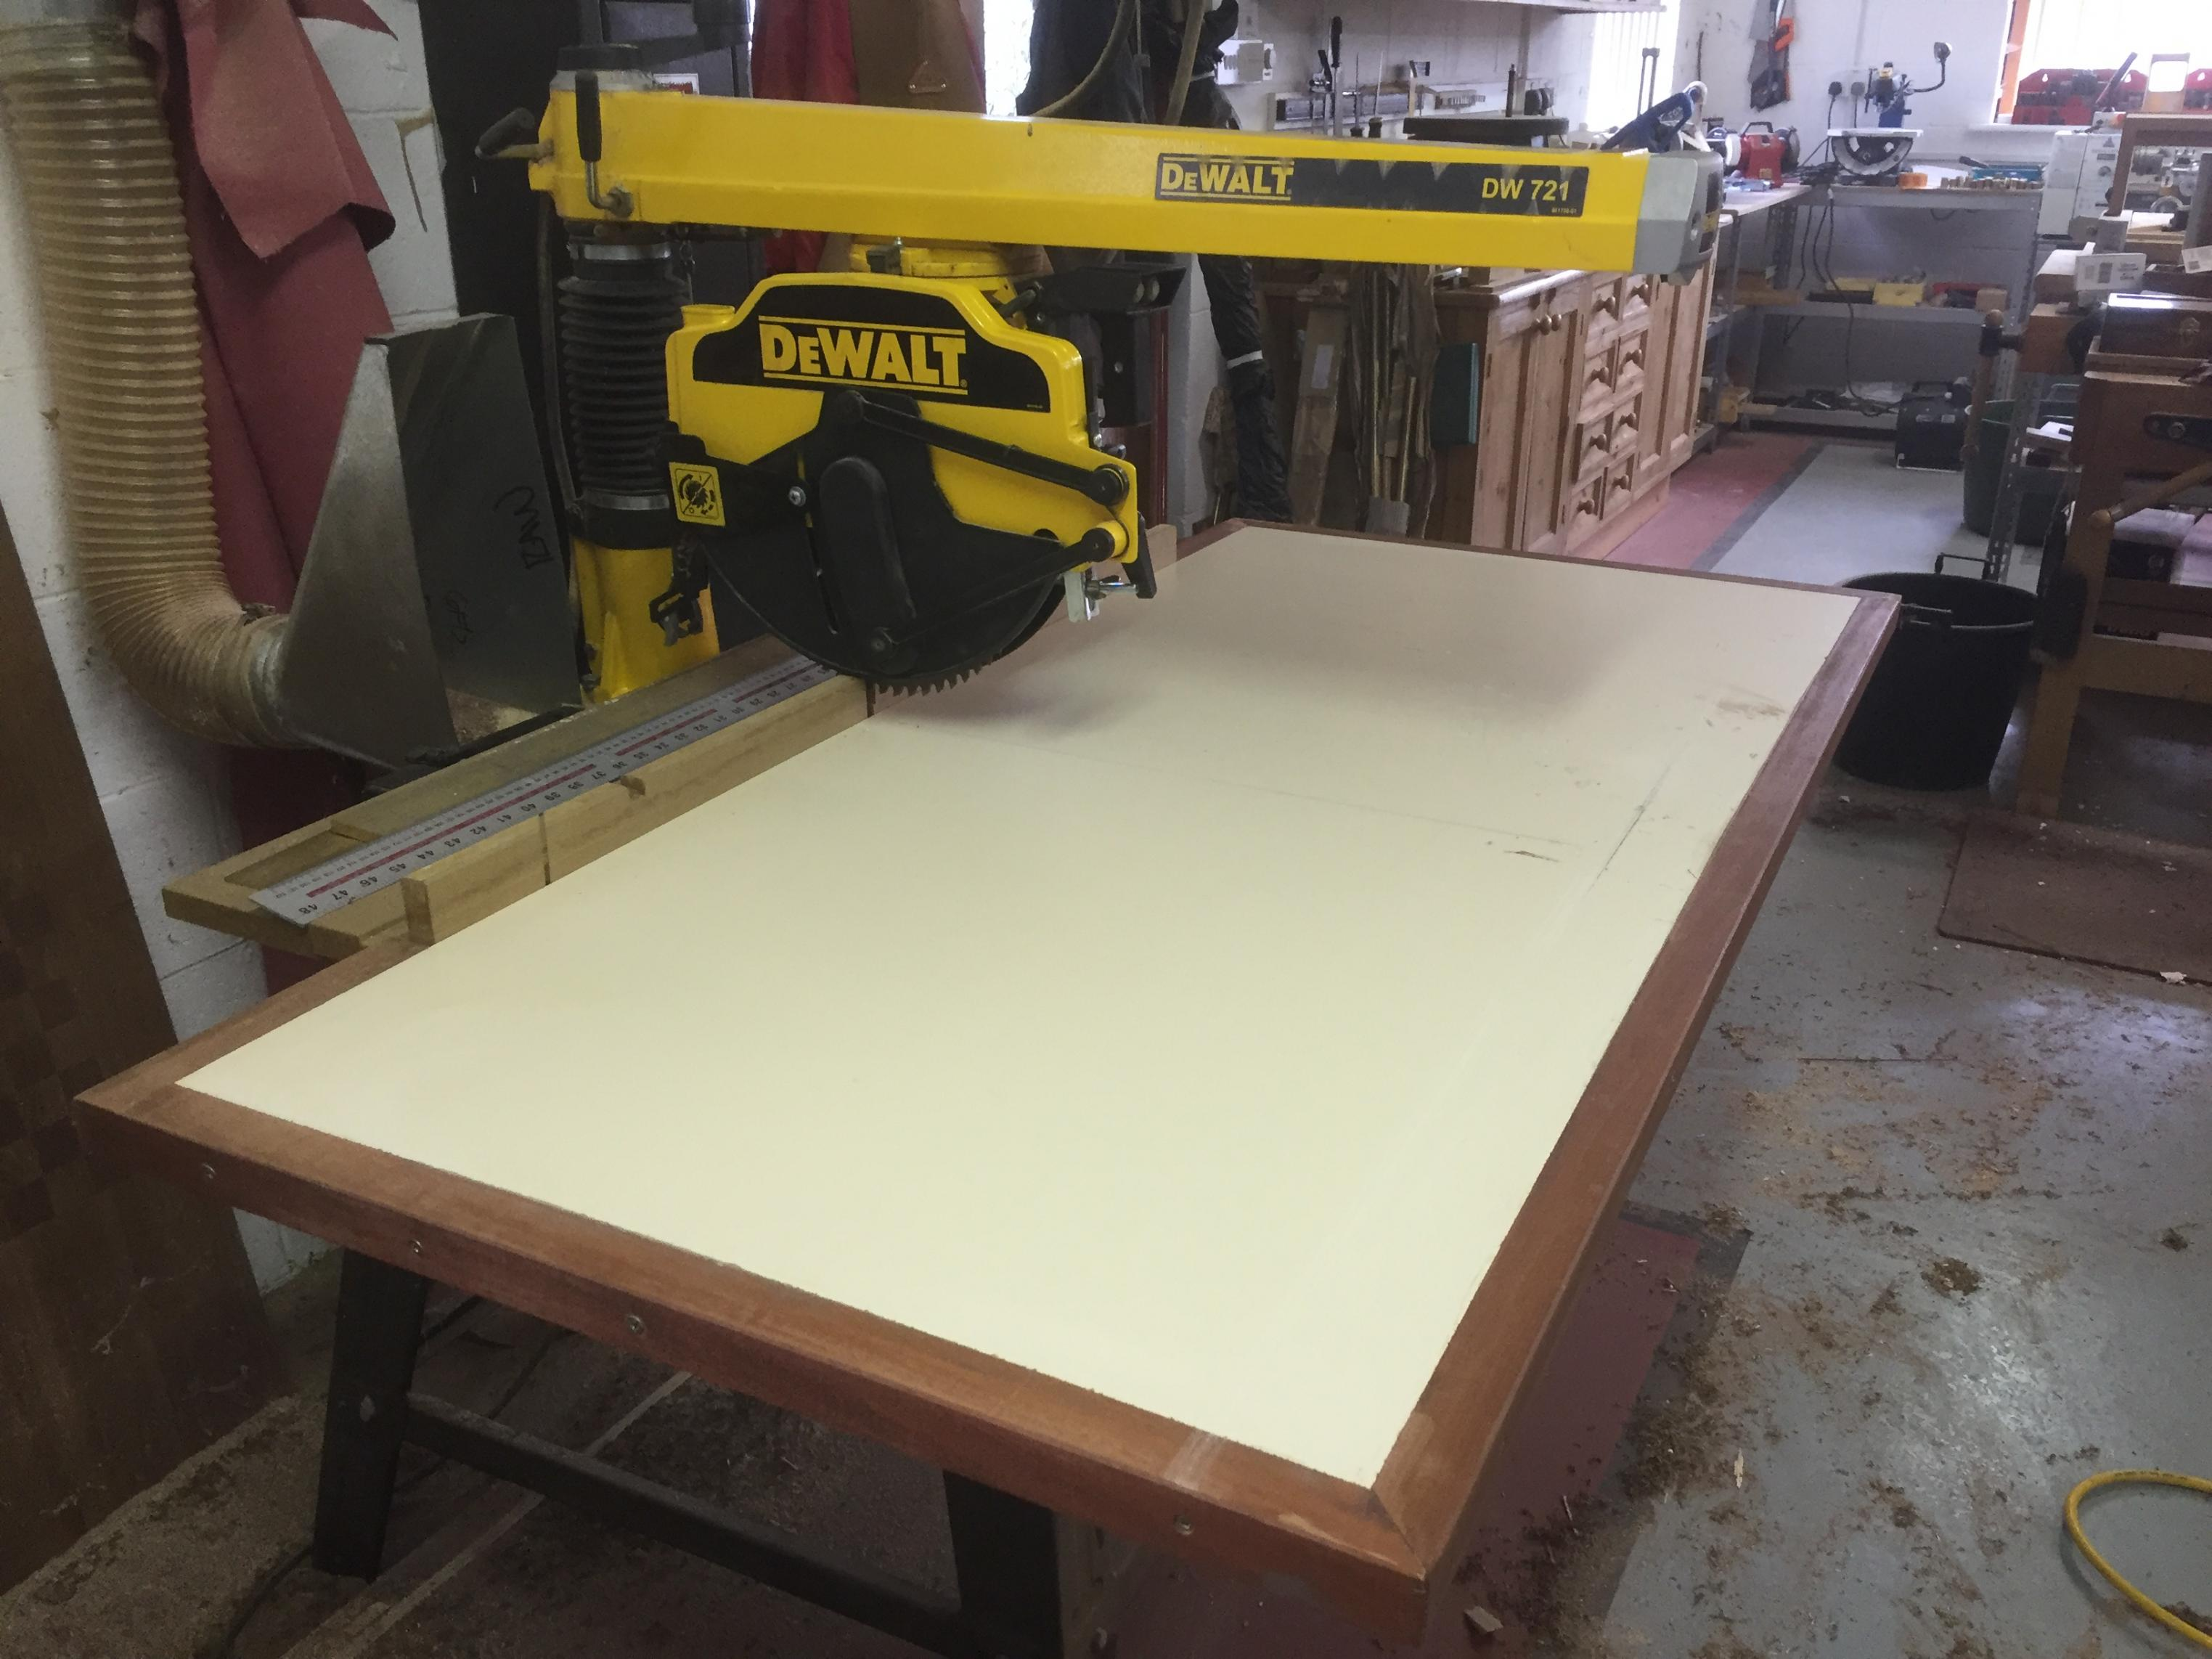 Genial Radial Arm Saw Table/jig Img_5208%5B1%5D